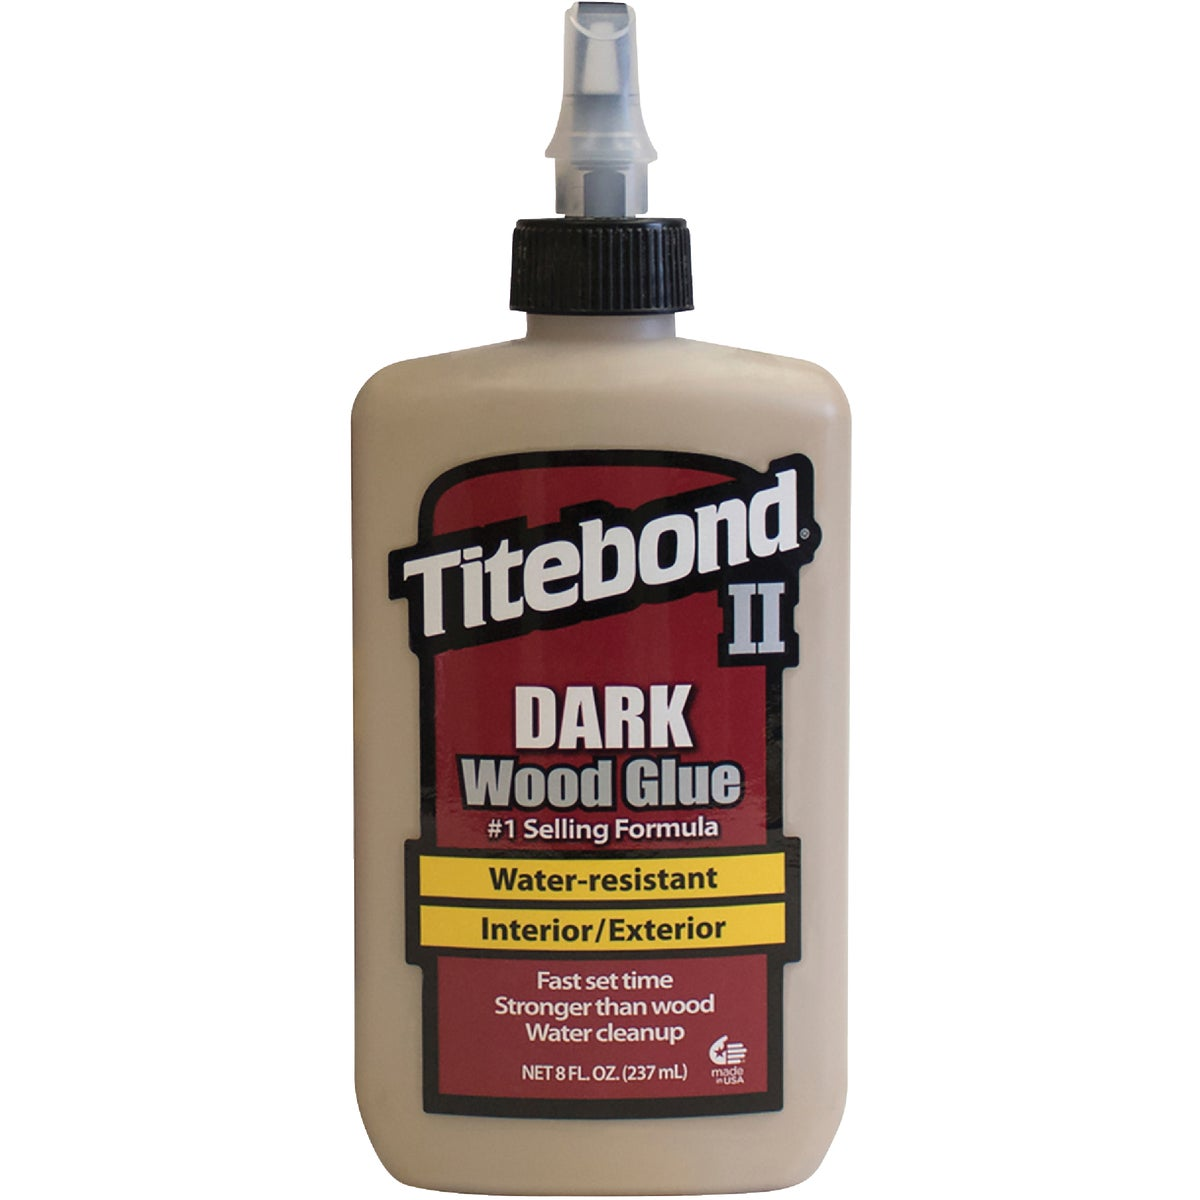 8OZ DARK WOOD GLUE - 3703 by Franklin Interl